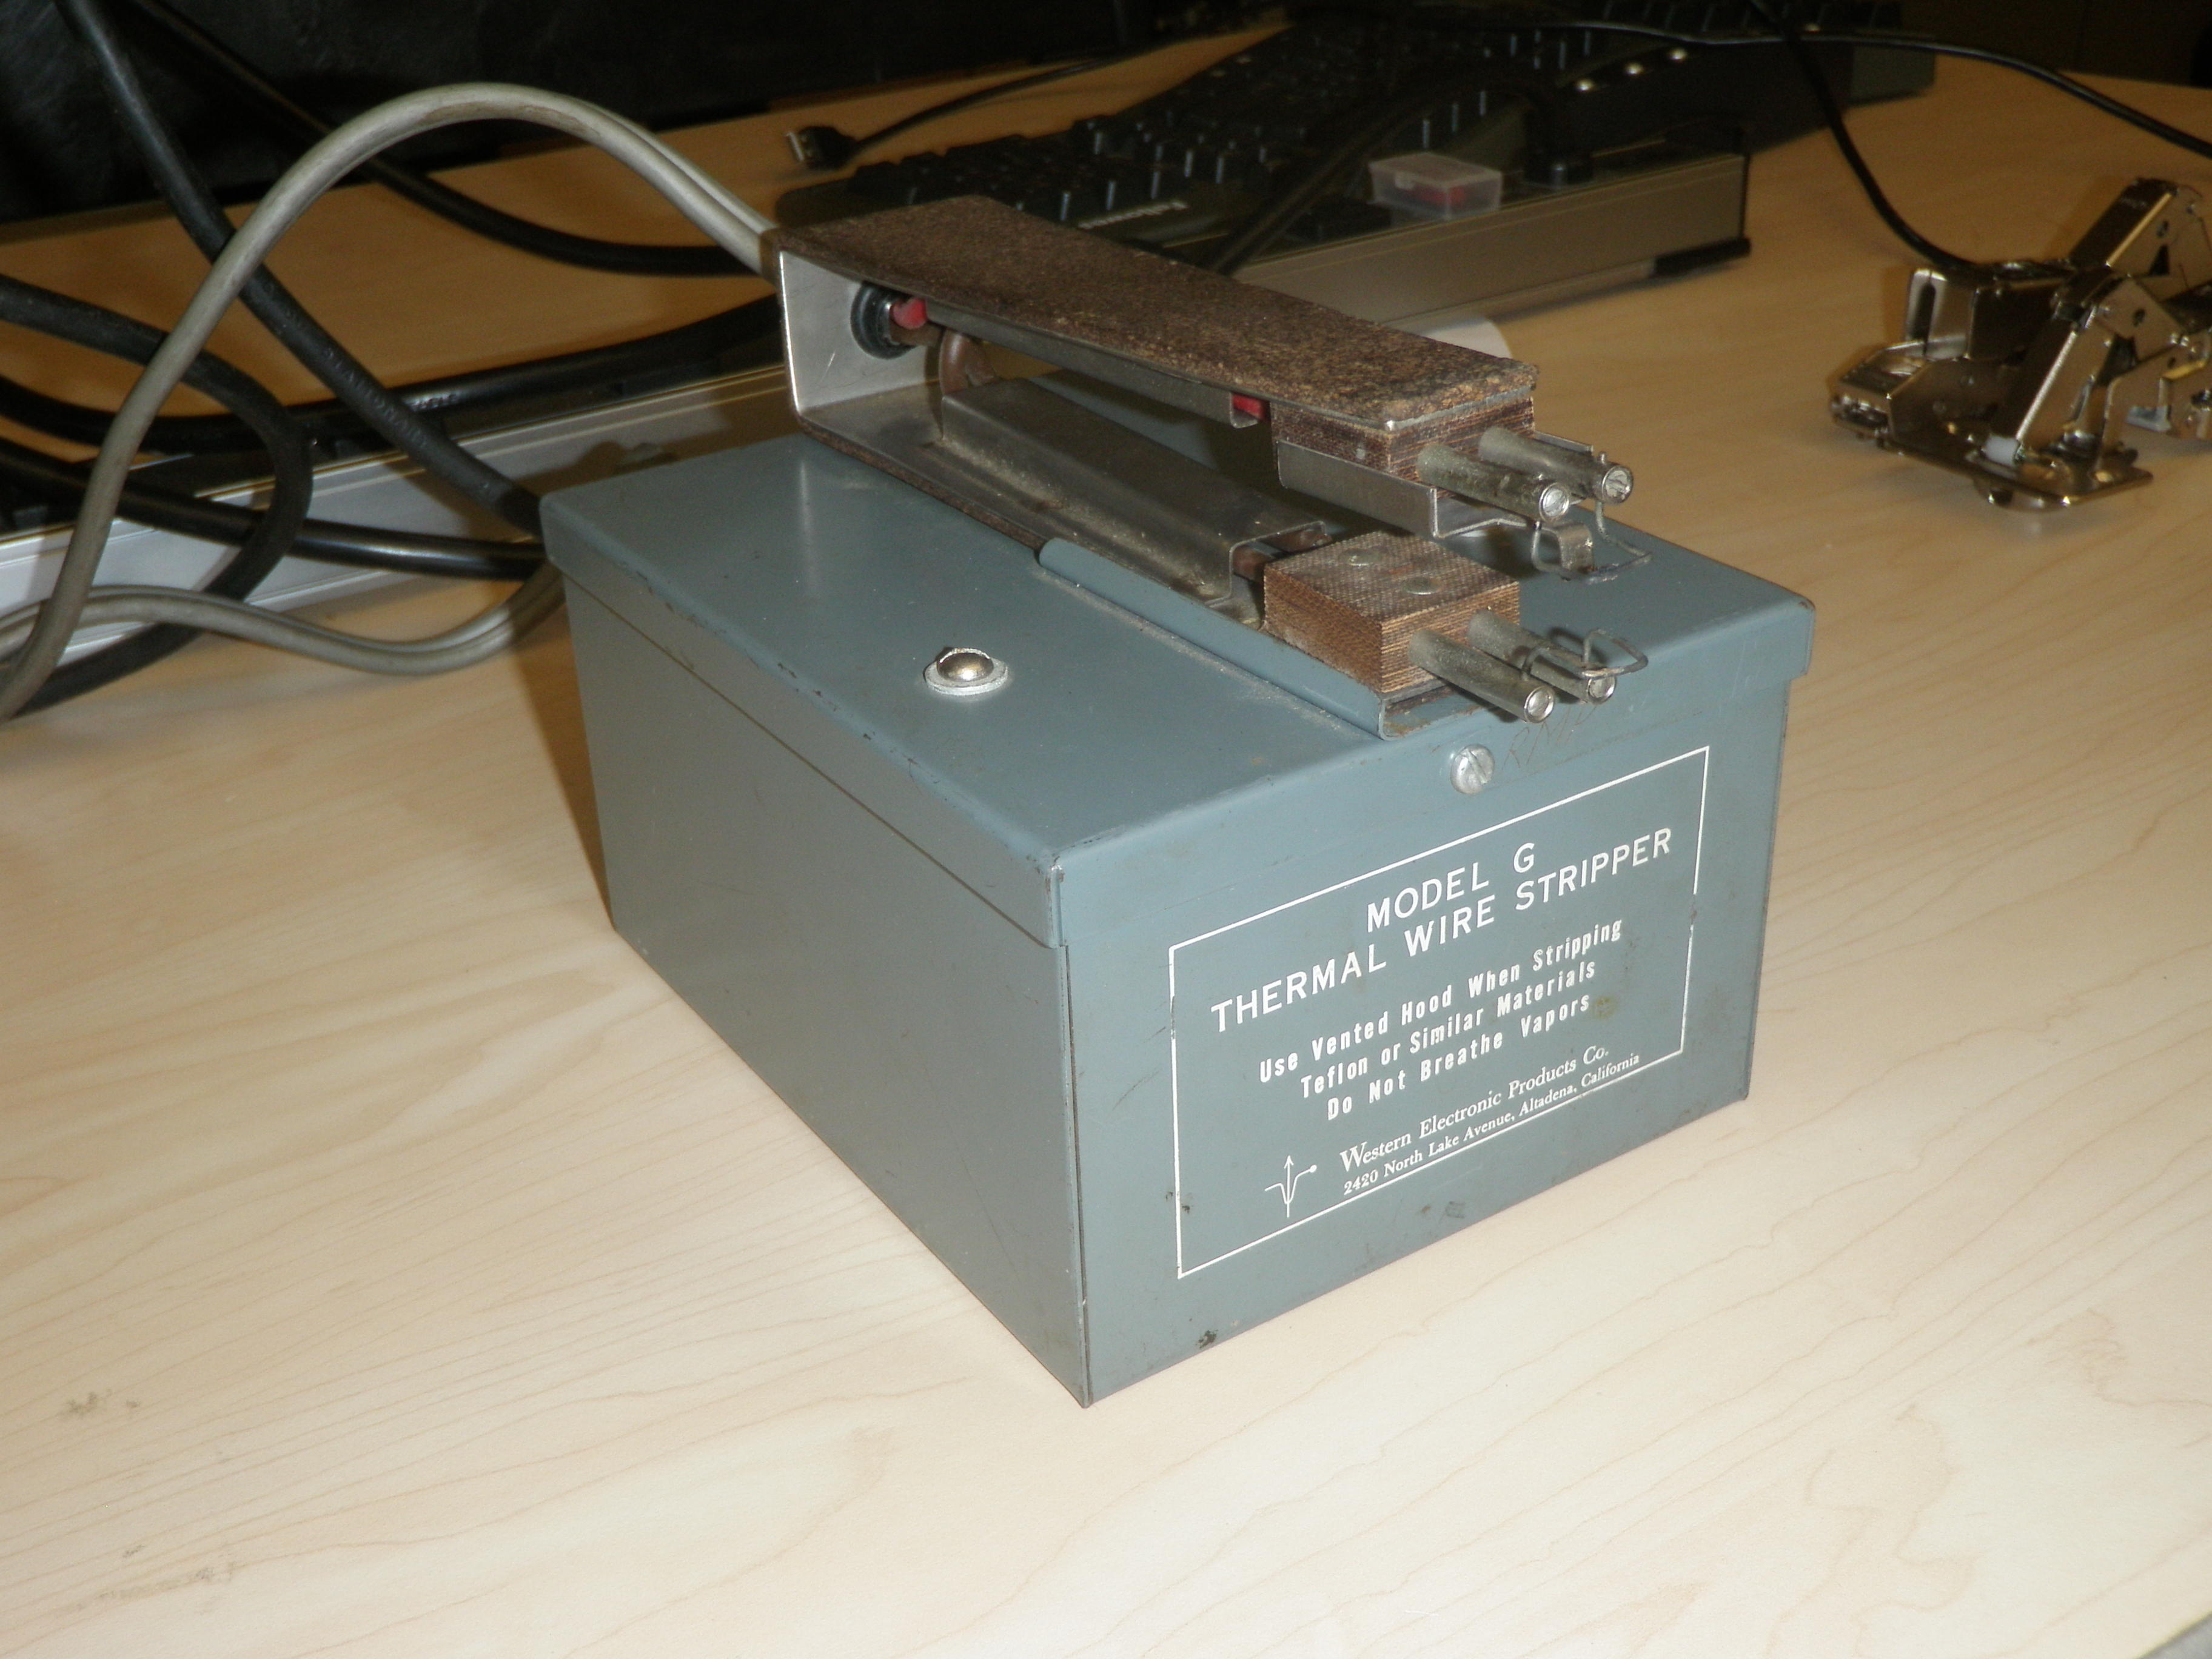 Filethermal Wire Stripper Hot End Wikimedia Commons Stripping Electrical Images Of